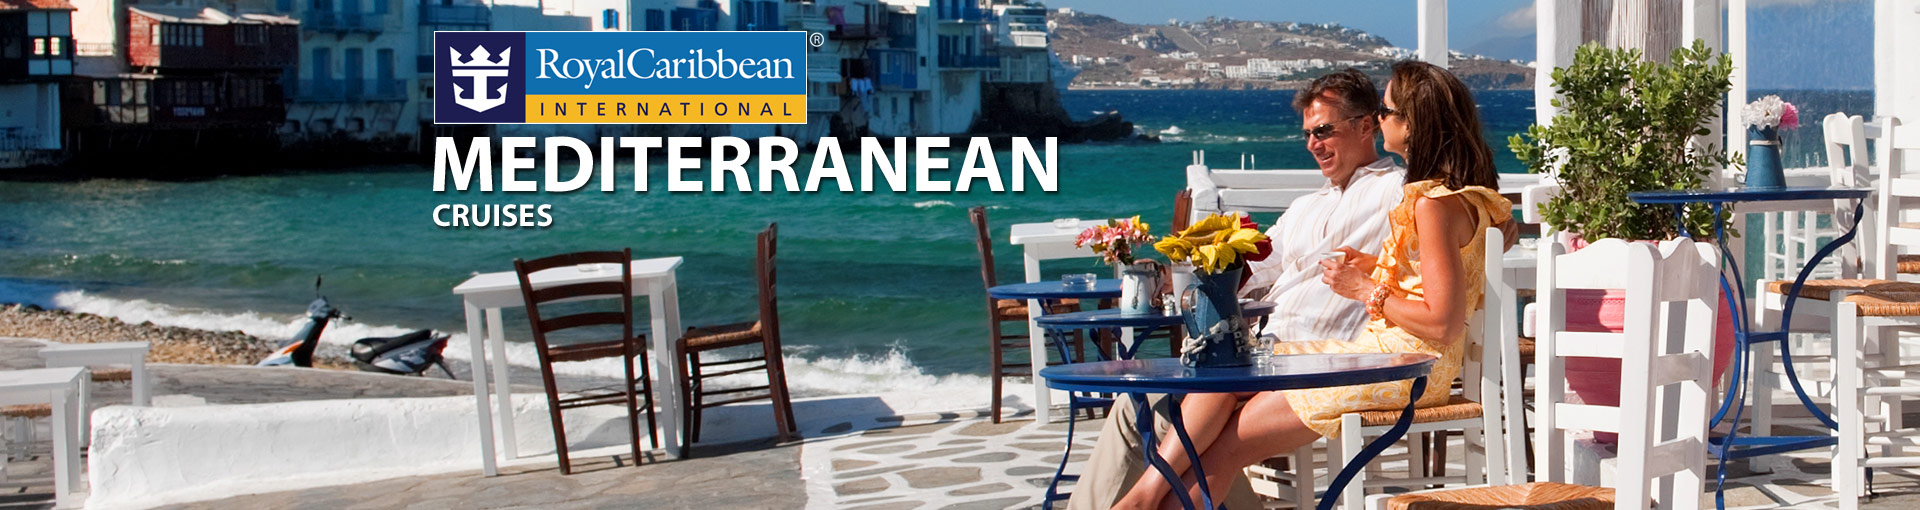 Royal Caribbean Mediterranean Cruises 2017 And 2018 Mediterranean Royal Cari